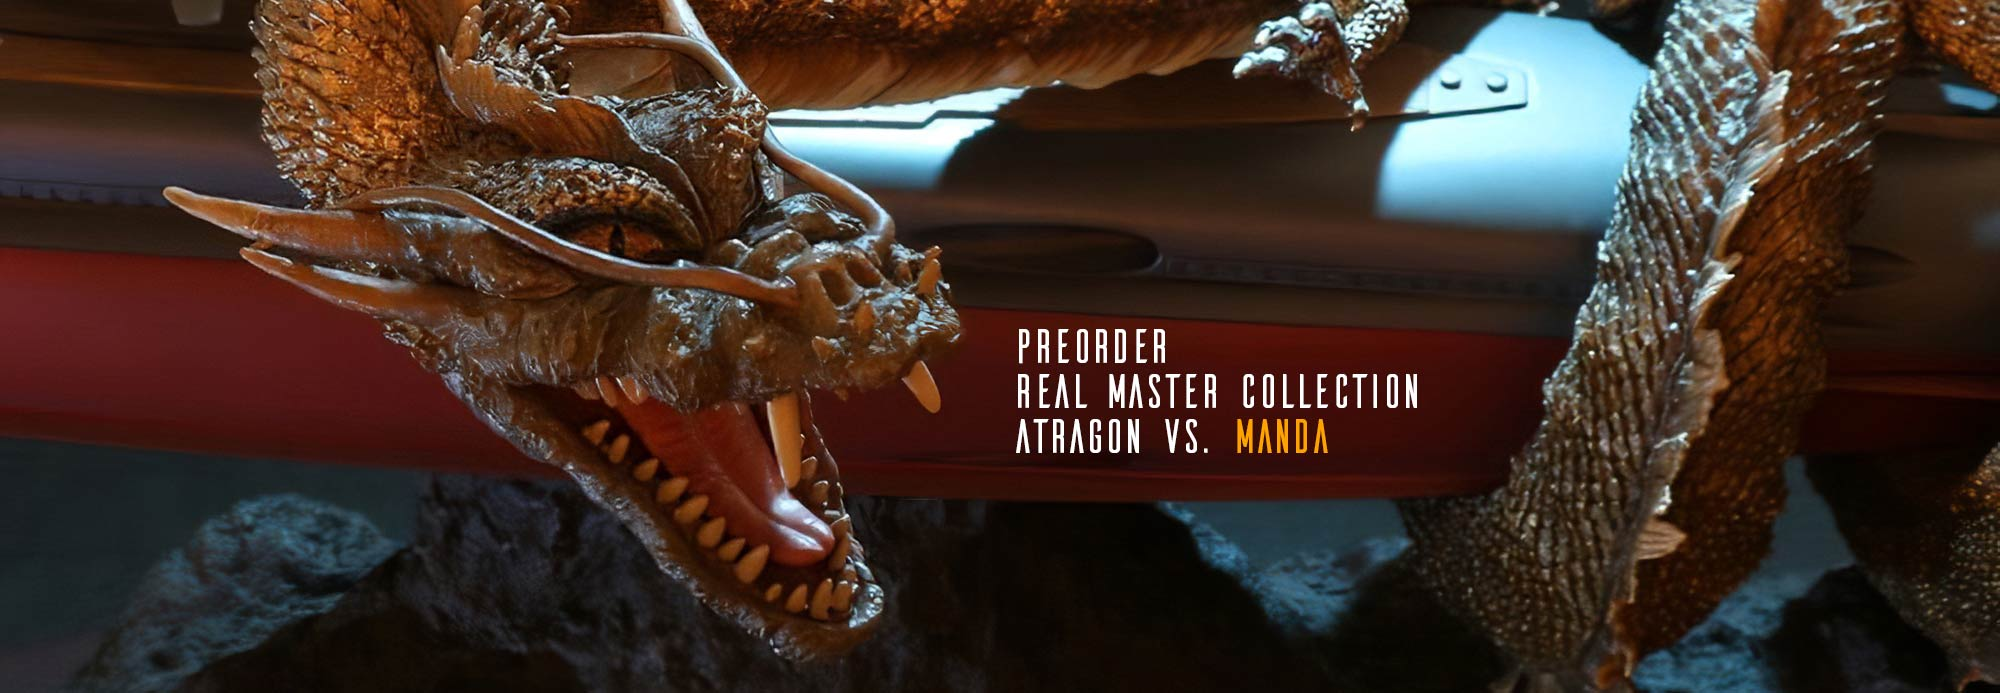 Preorders open for Real Master Collection Atragon vs. Manda by X-Plus.